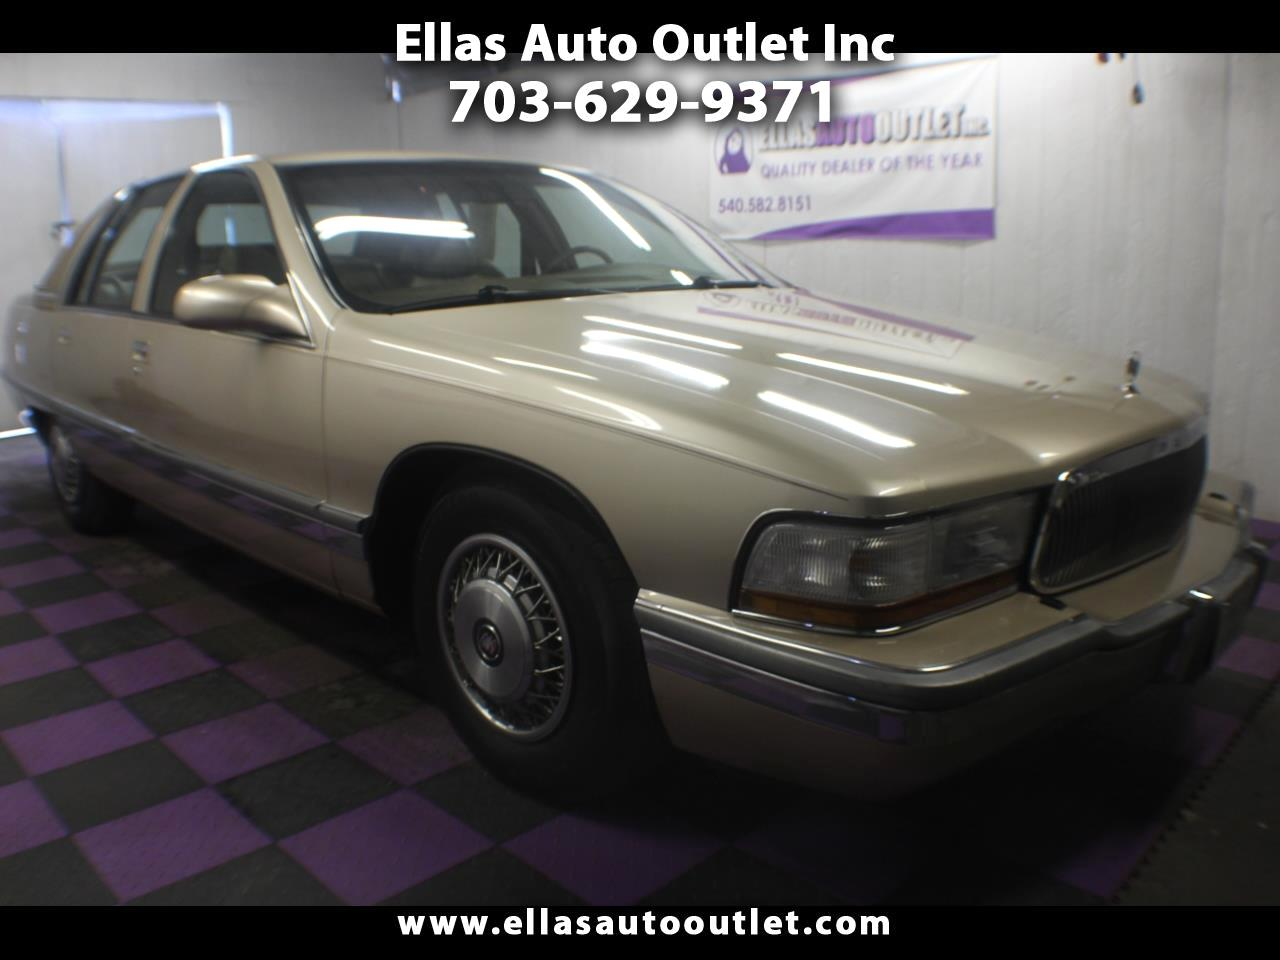 1995 Buick Roadmaster 4dr Sedan